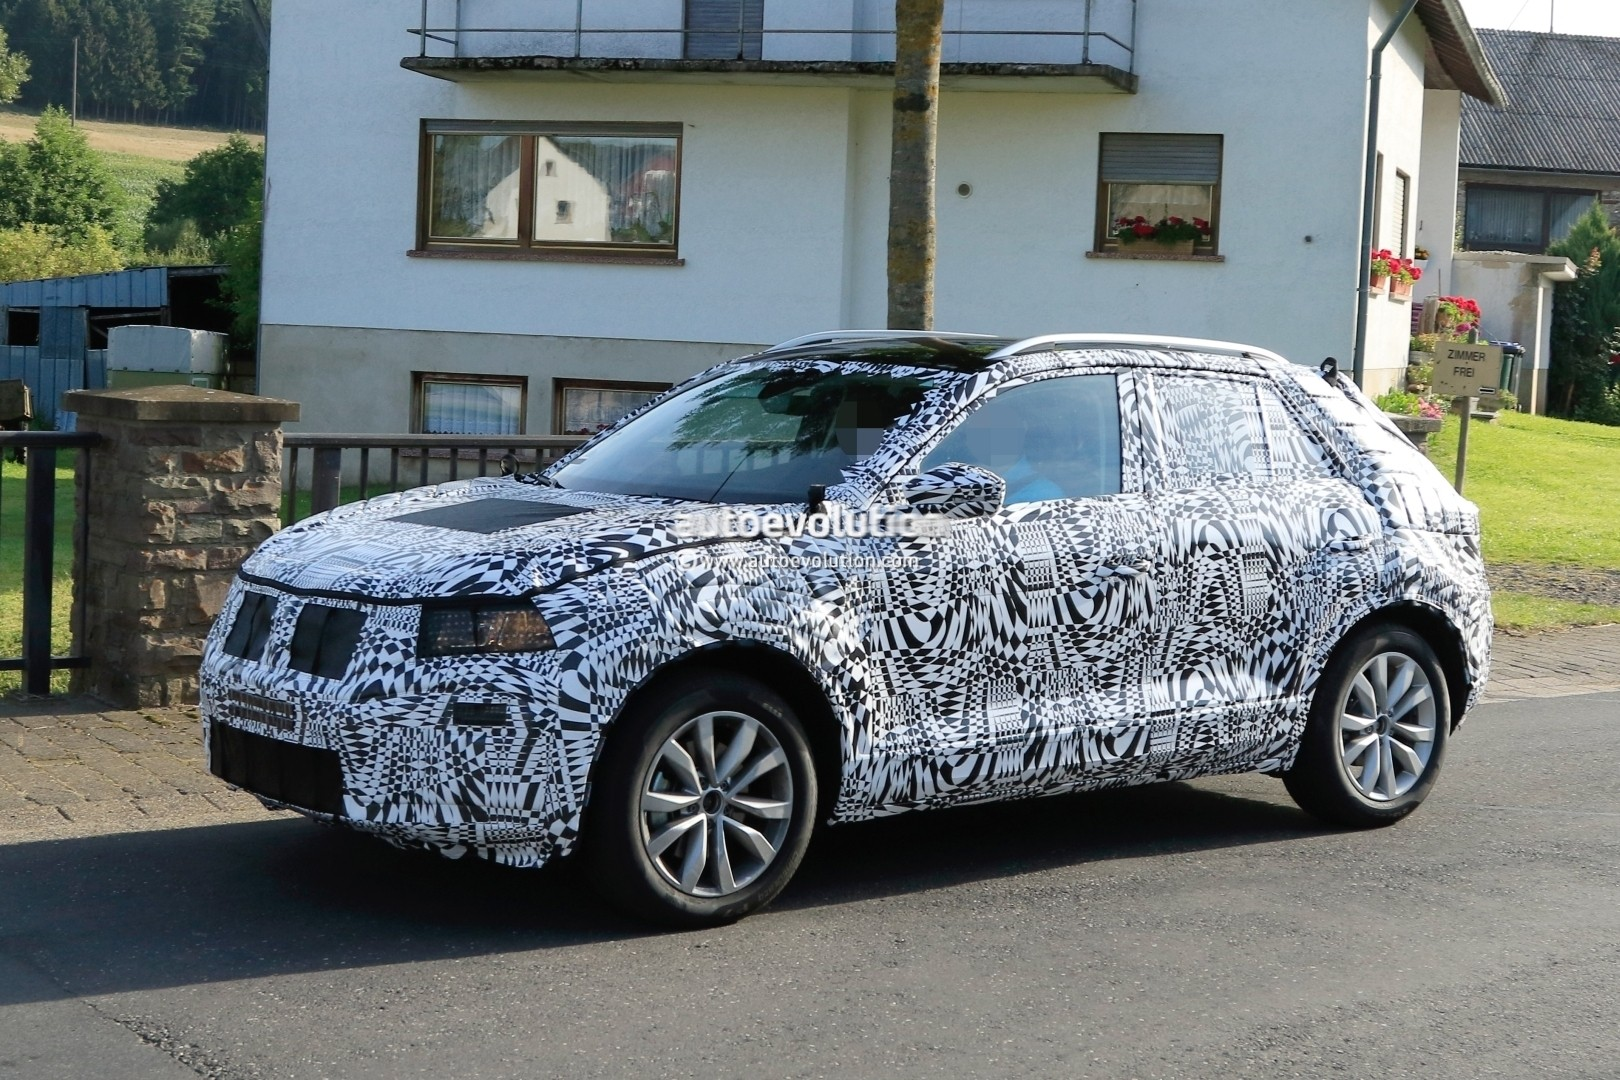 2018 volkswagen polo-based subcompact suv spied  us market entry possible